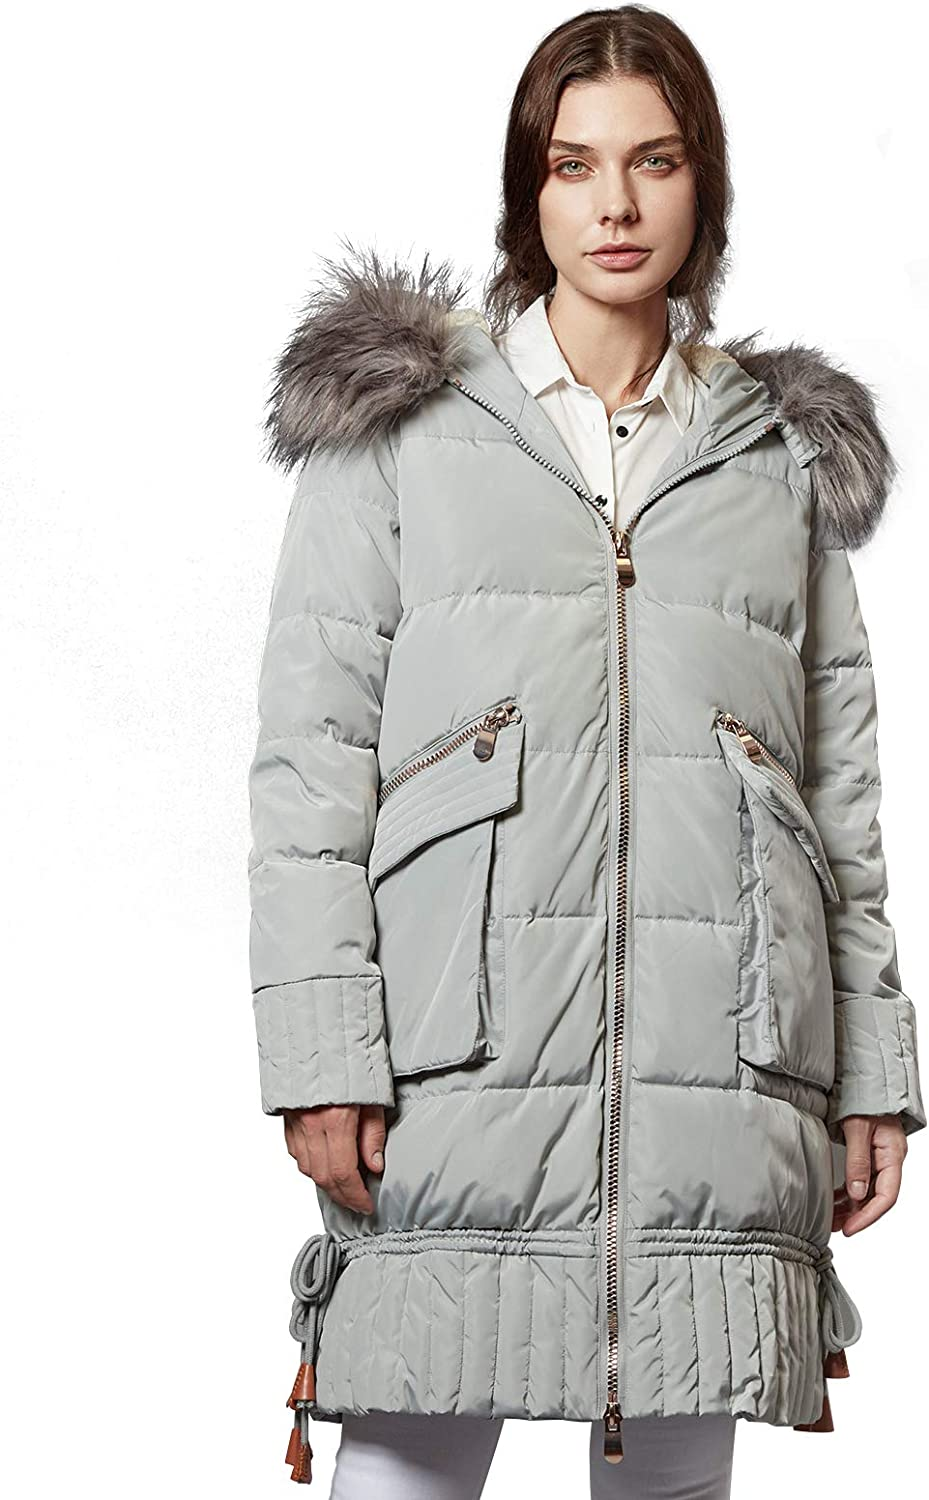 Escalier Women Windproof Padded Puffer Coat Winter Thickened Long Parkas Jacket with Fur Trimmed Hood